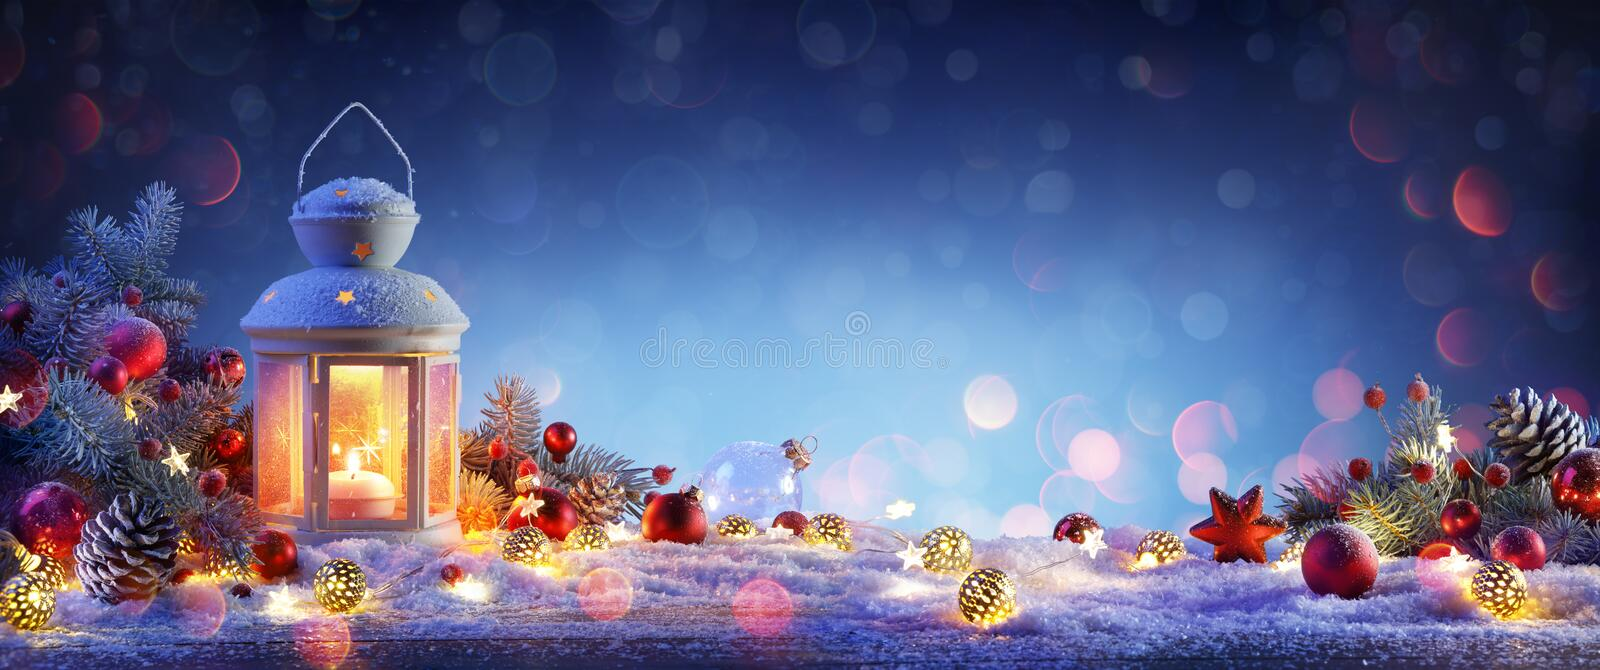 Christmas Lantern On Snowy Table With Fir Branches stock images